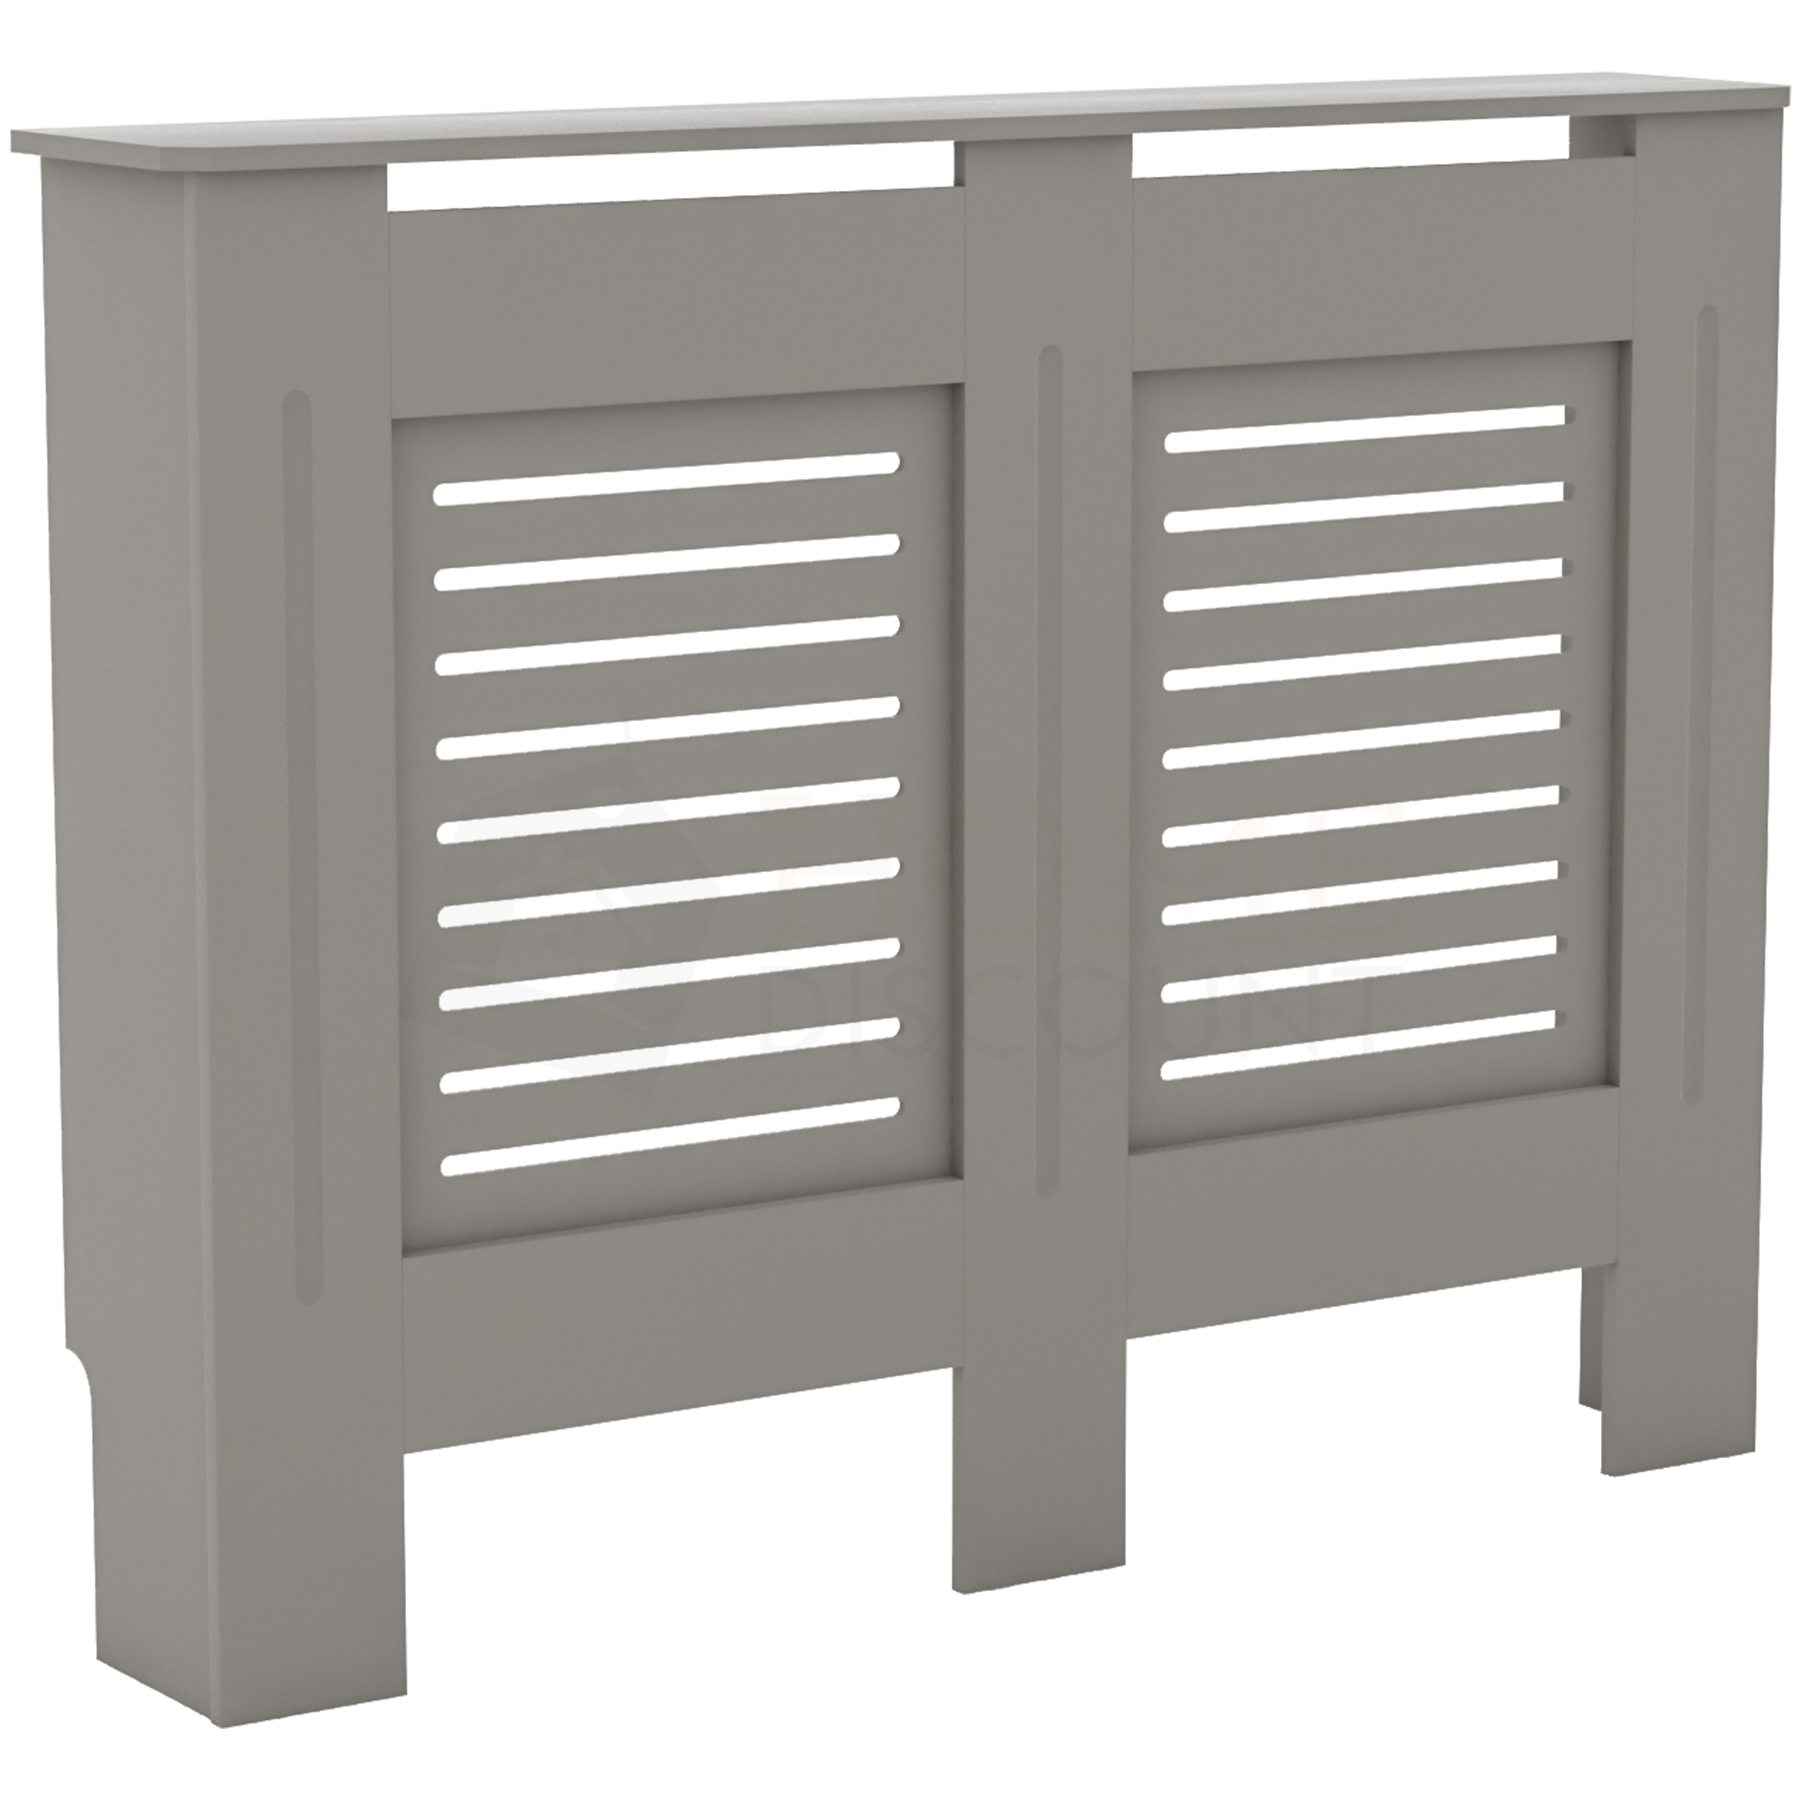 Radiateur-Housse-Blanc-inachevee-MODERNE-BOIS-TRADITIONNELLE-Grill-cabinet-furniture miniature 137